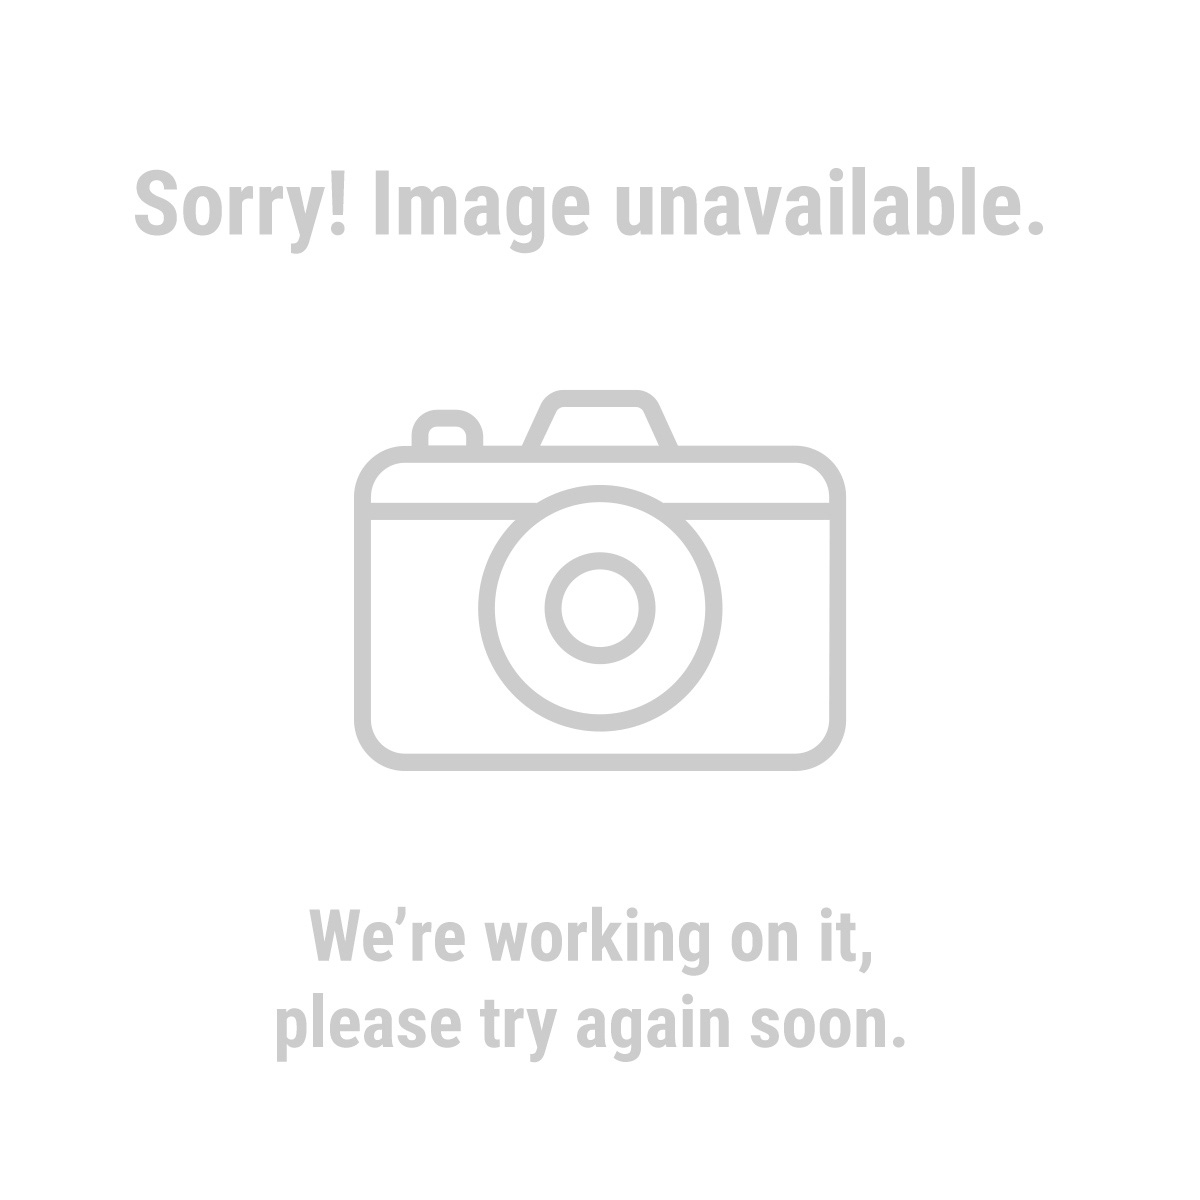 "Warrior 67509 4-1/2"" x 1/4"" Depressed Center Grinding Wheel for Metal"